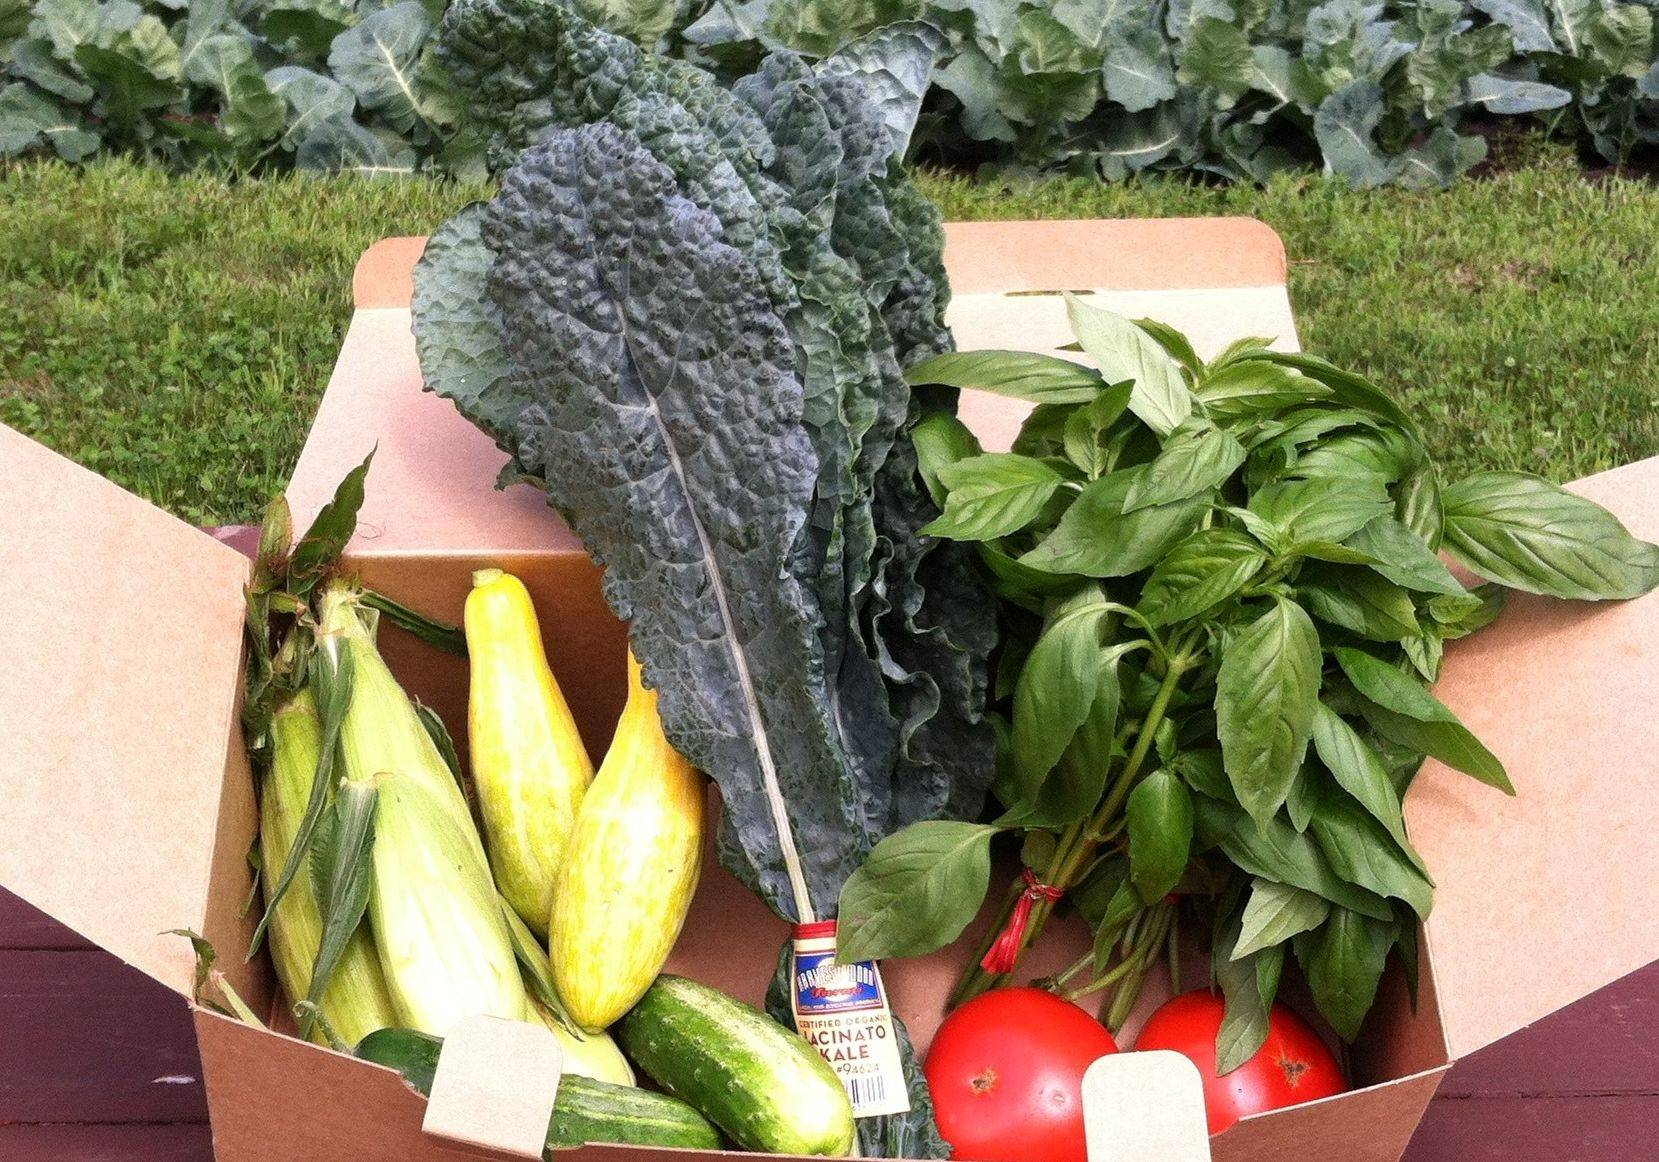 Organic and heirloom produce is available in CSA-style boxes at peapod.com.